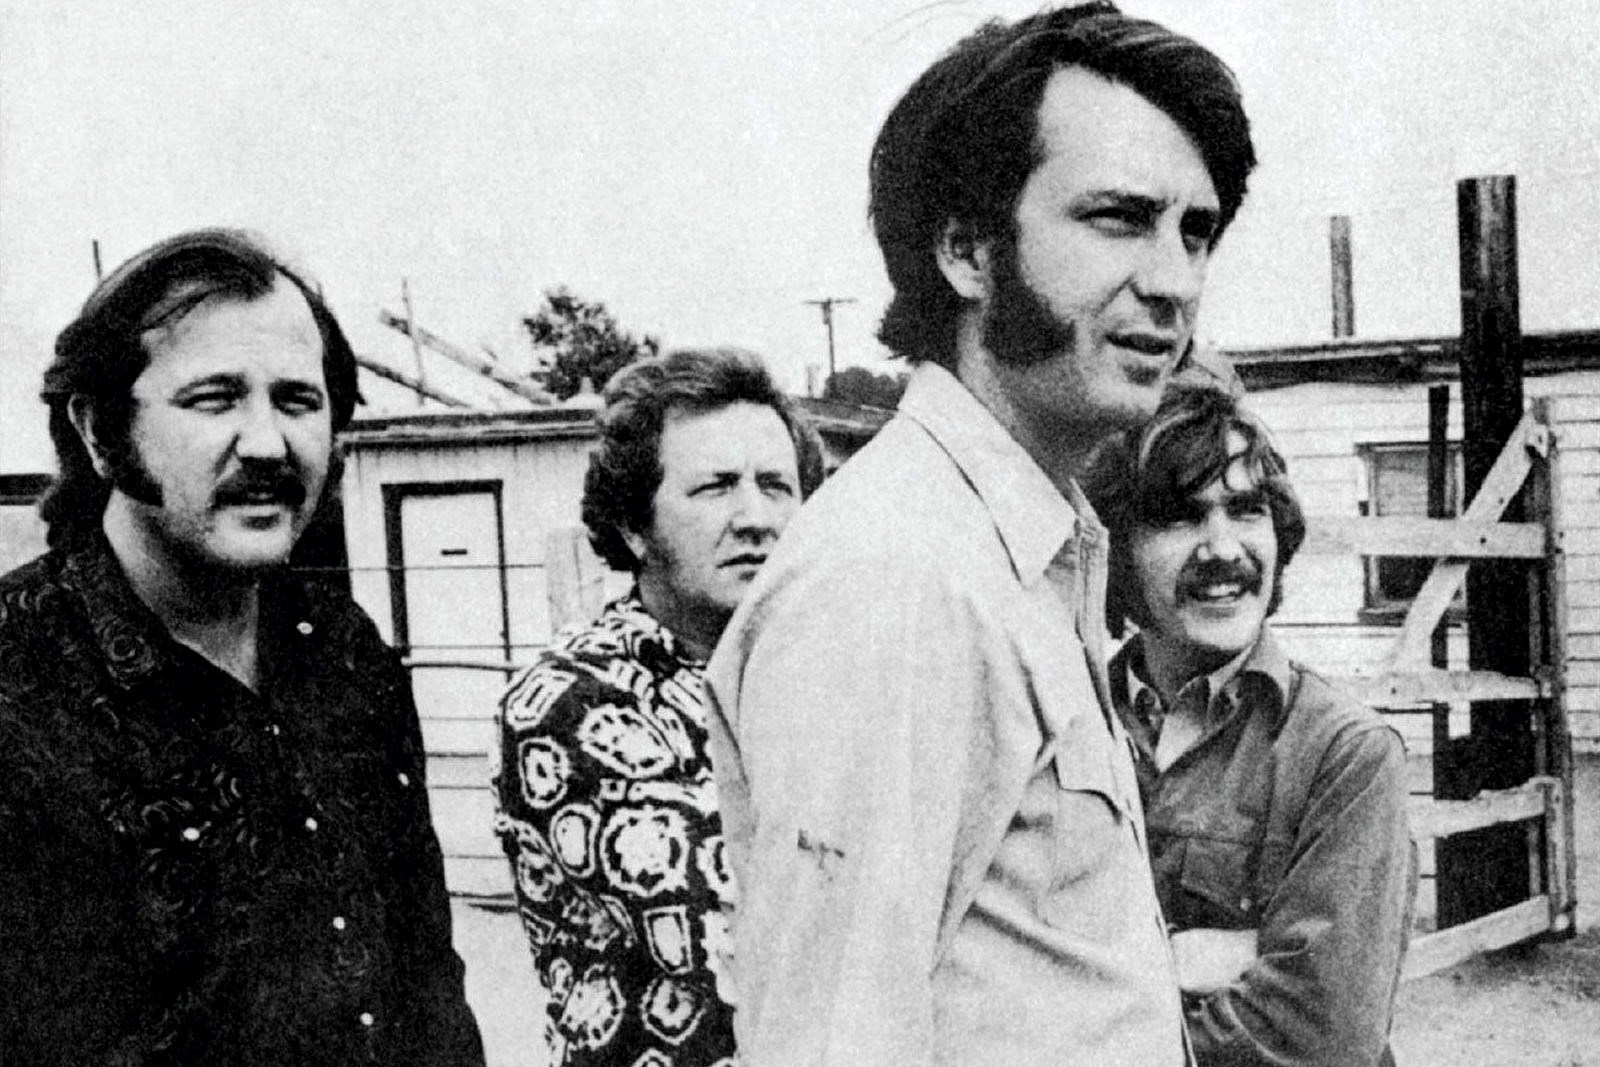 Michael Nesmith and the First National Band photo 2